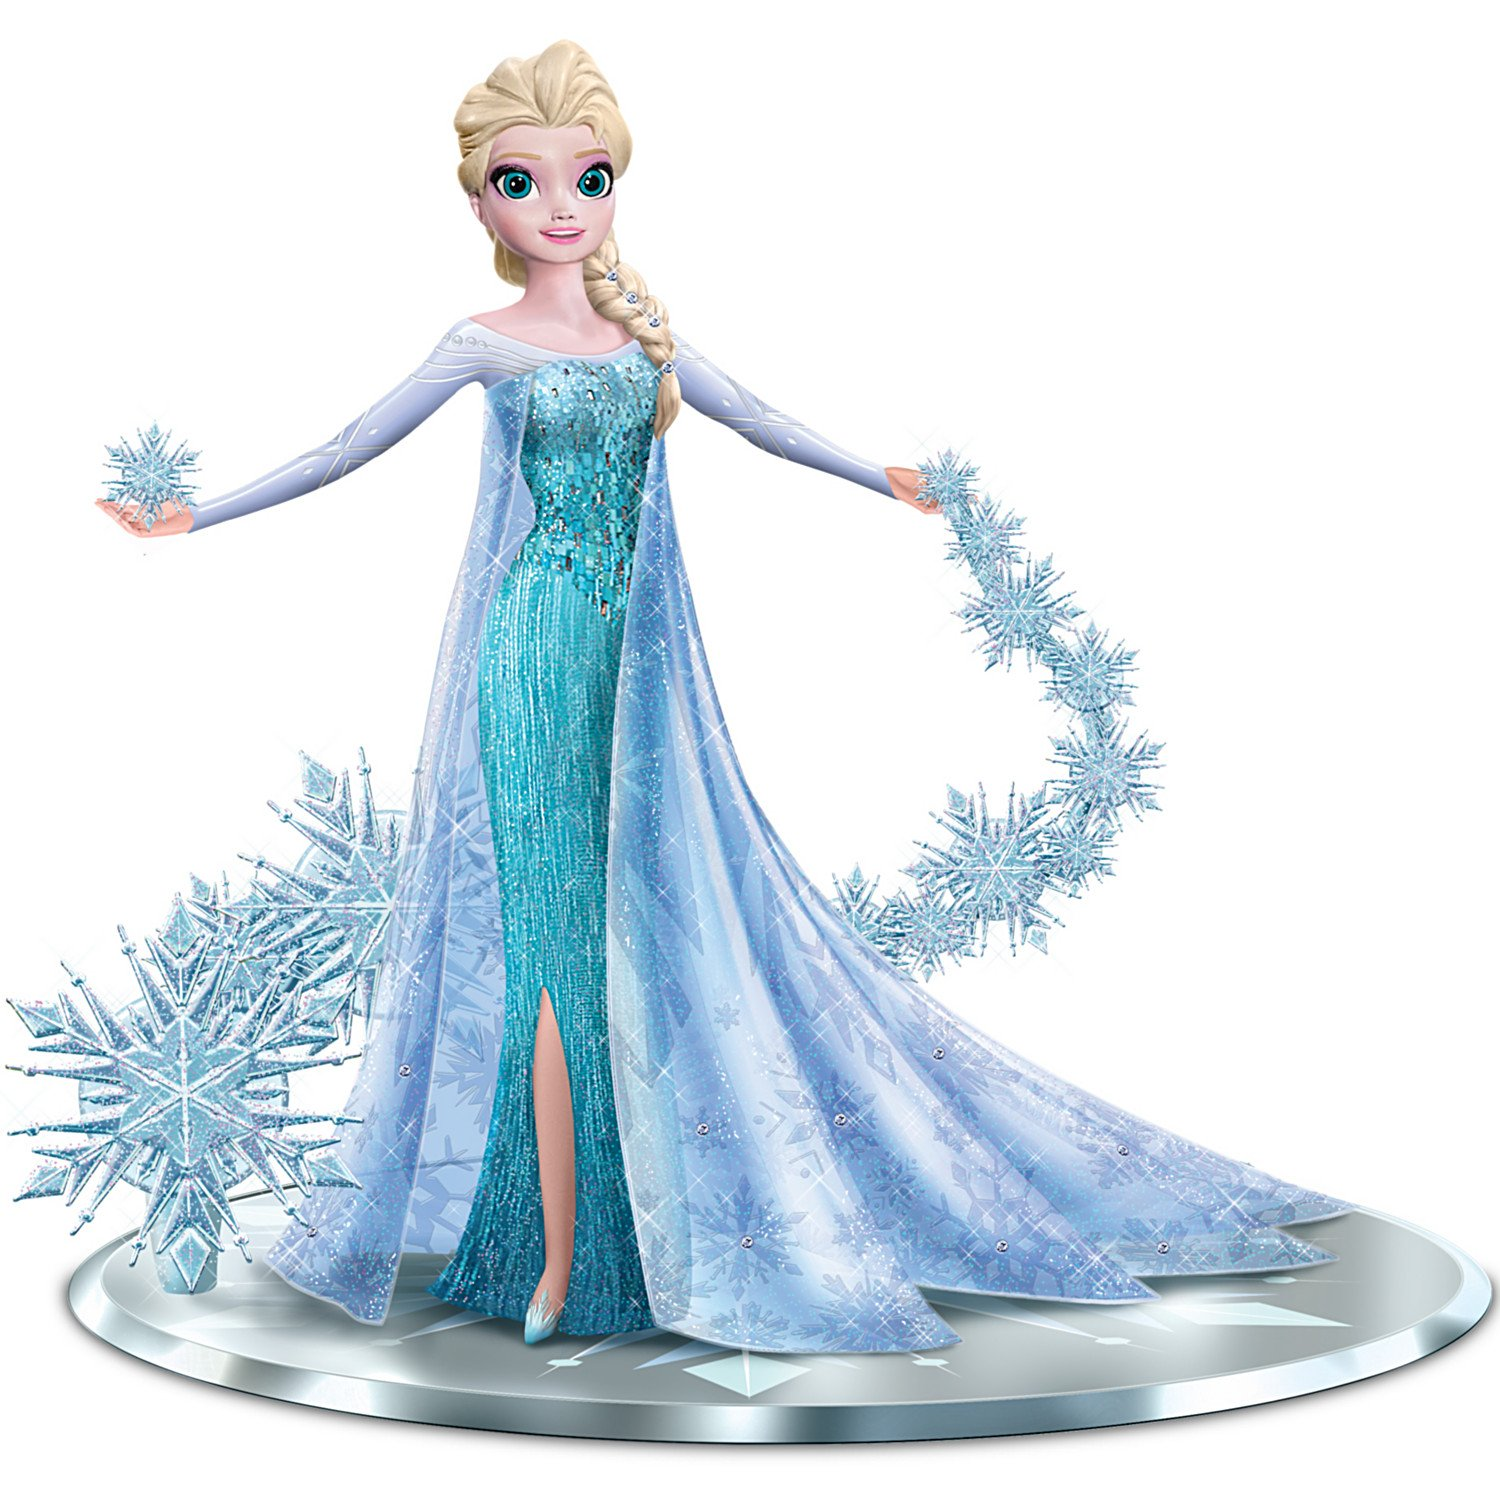 Disney FROZEN Elsa the Snow Queen with Swarovski Crystals: Let It Go Figurine by The Hamilton Collection